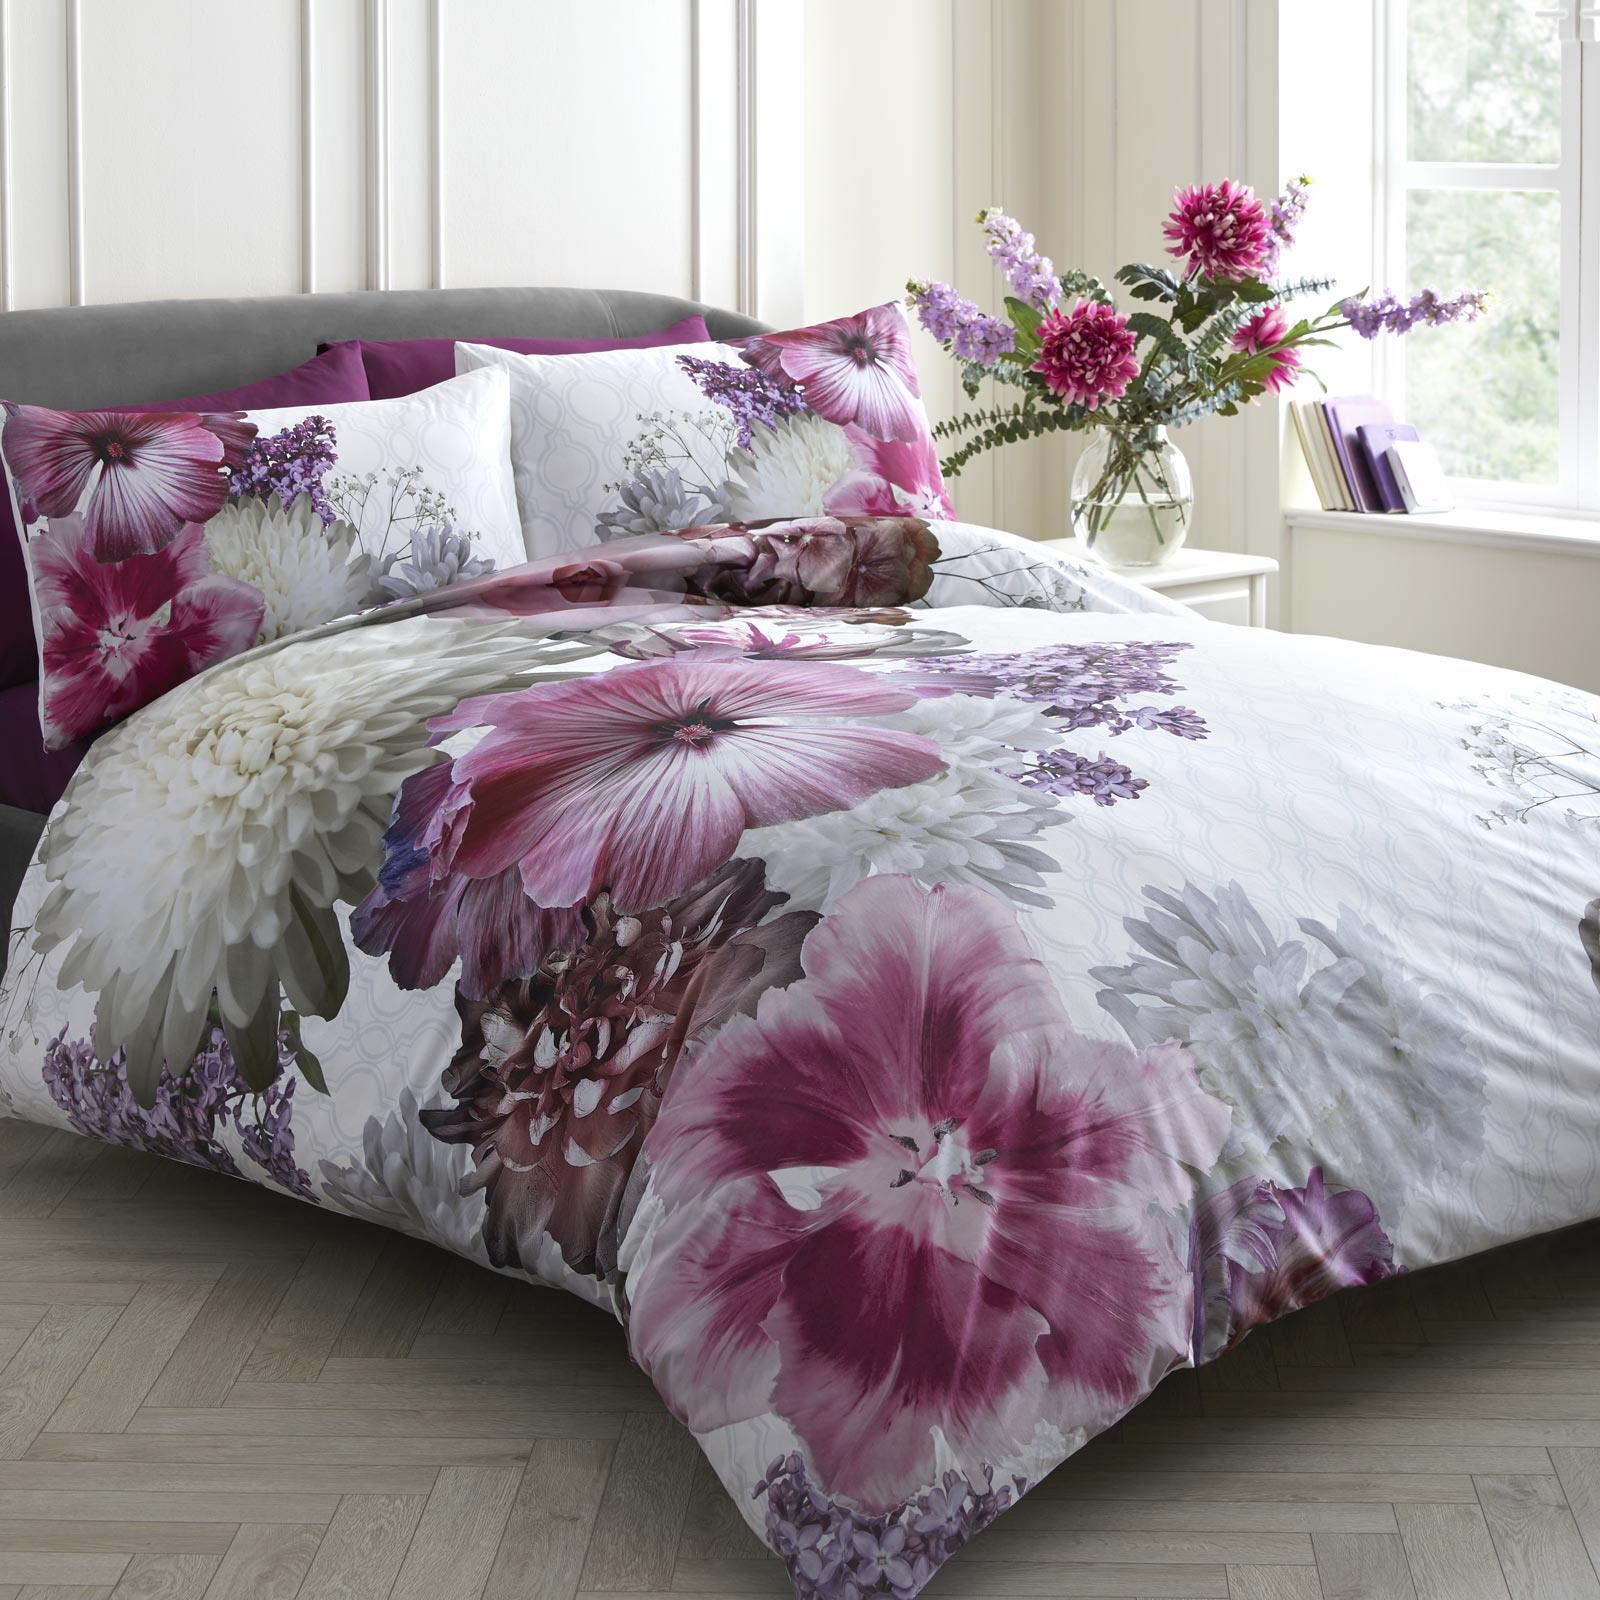 Purple Duvet Covers Floral 100 Cotton Cover Laurence Llewellyn Bowen Bedding Ebay